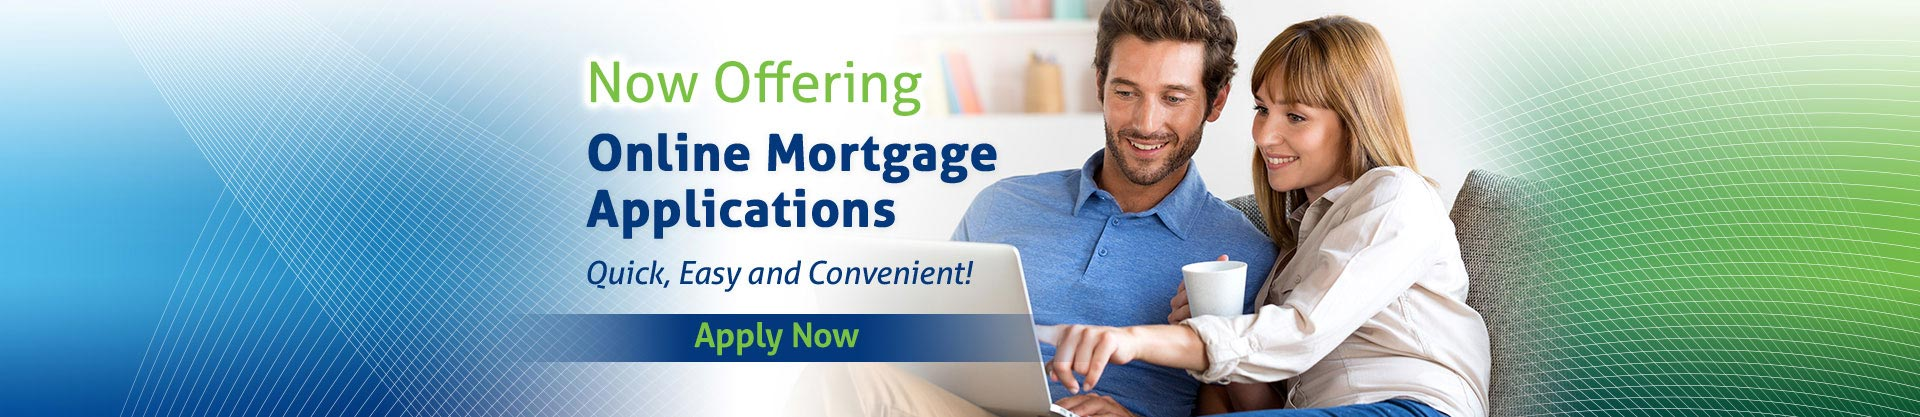 Now Offering Online Mortgage Applications. Quick, Easy and Convenient! Apply Now.